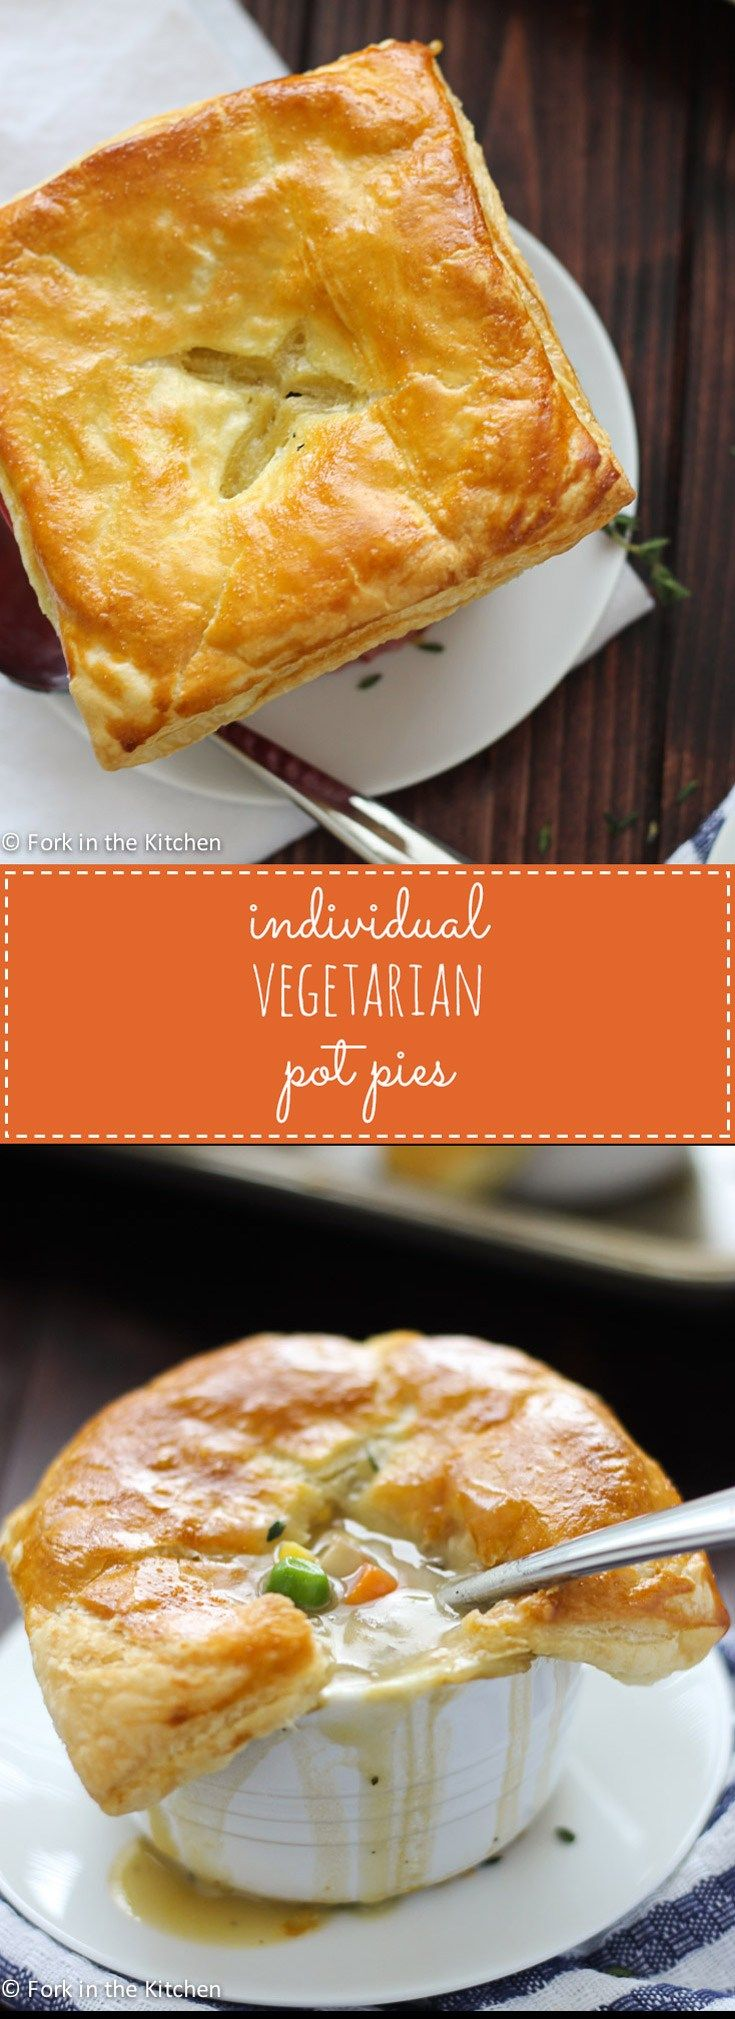 Individual Vegetarian Pot Pies are full of all the veggies you love in pot pies - potatoes, peas, carrots, corn - and plenty of soul-warming herbs, making them perfect for a comforting meal.